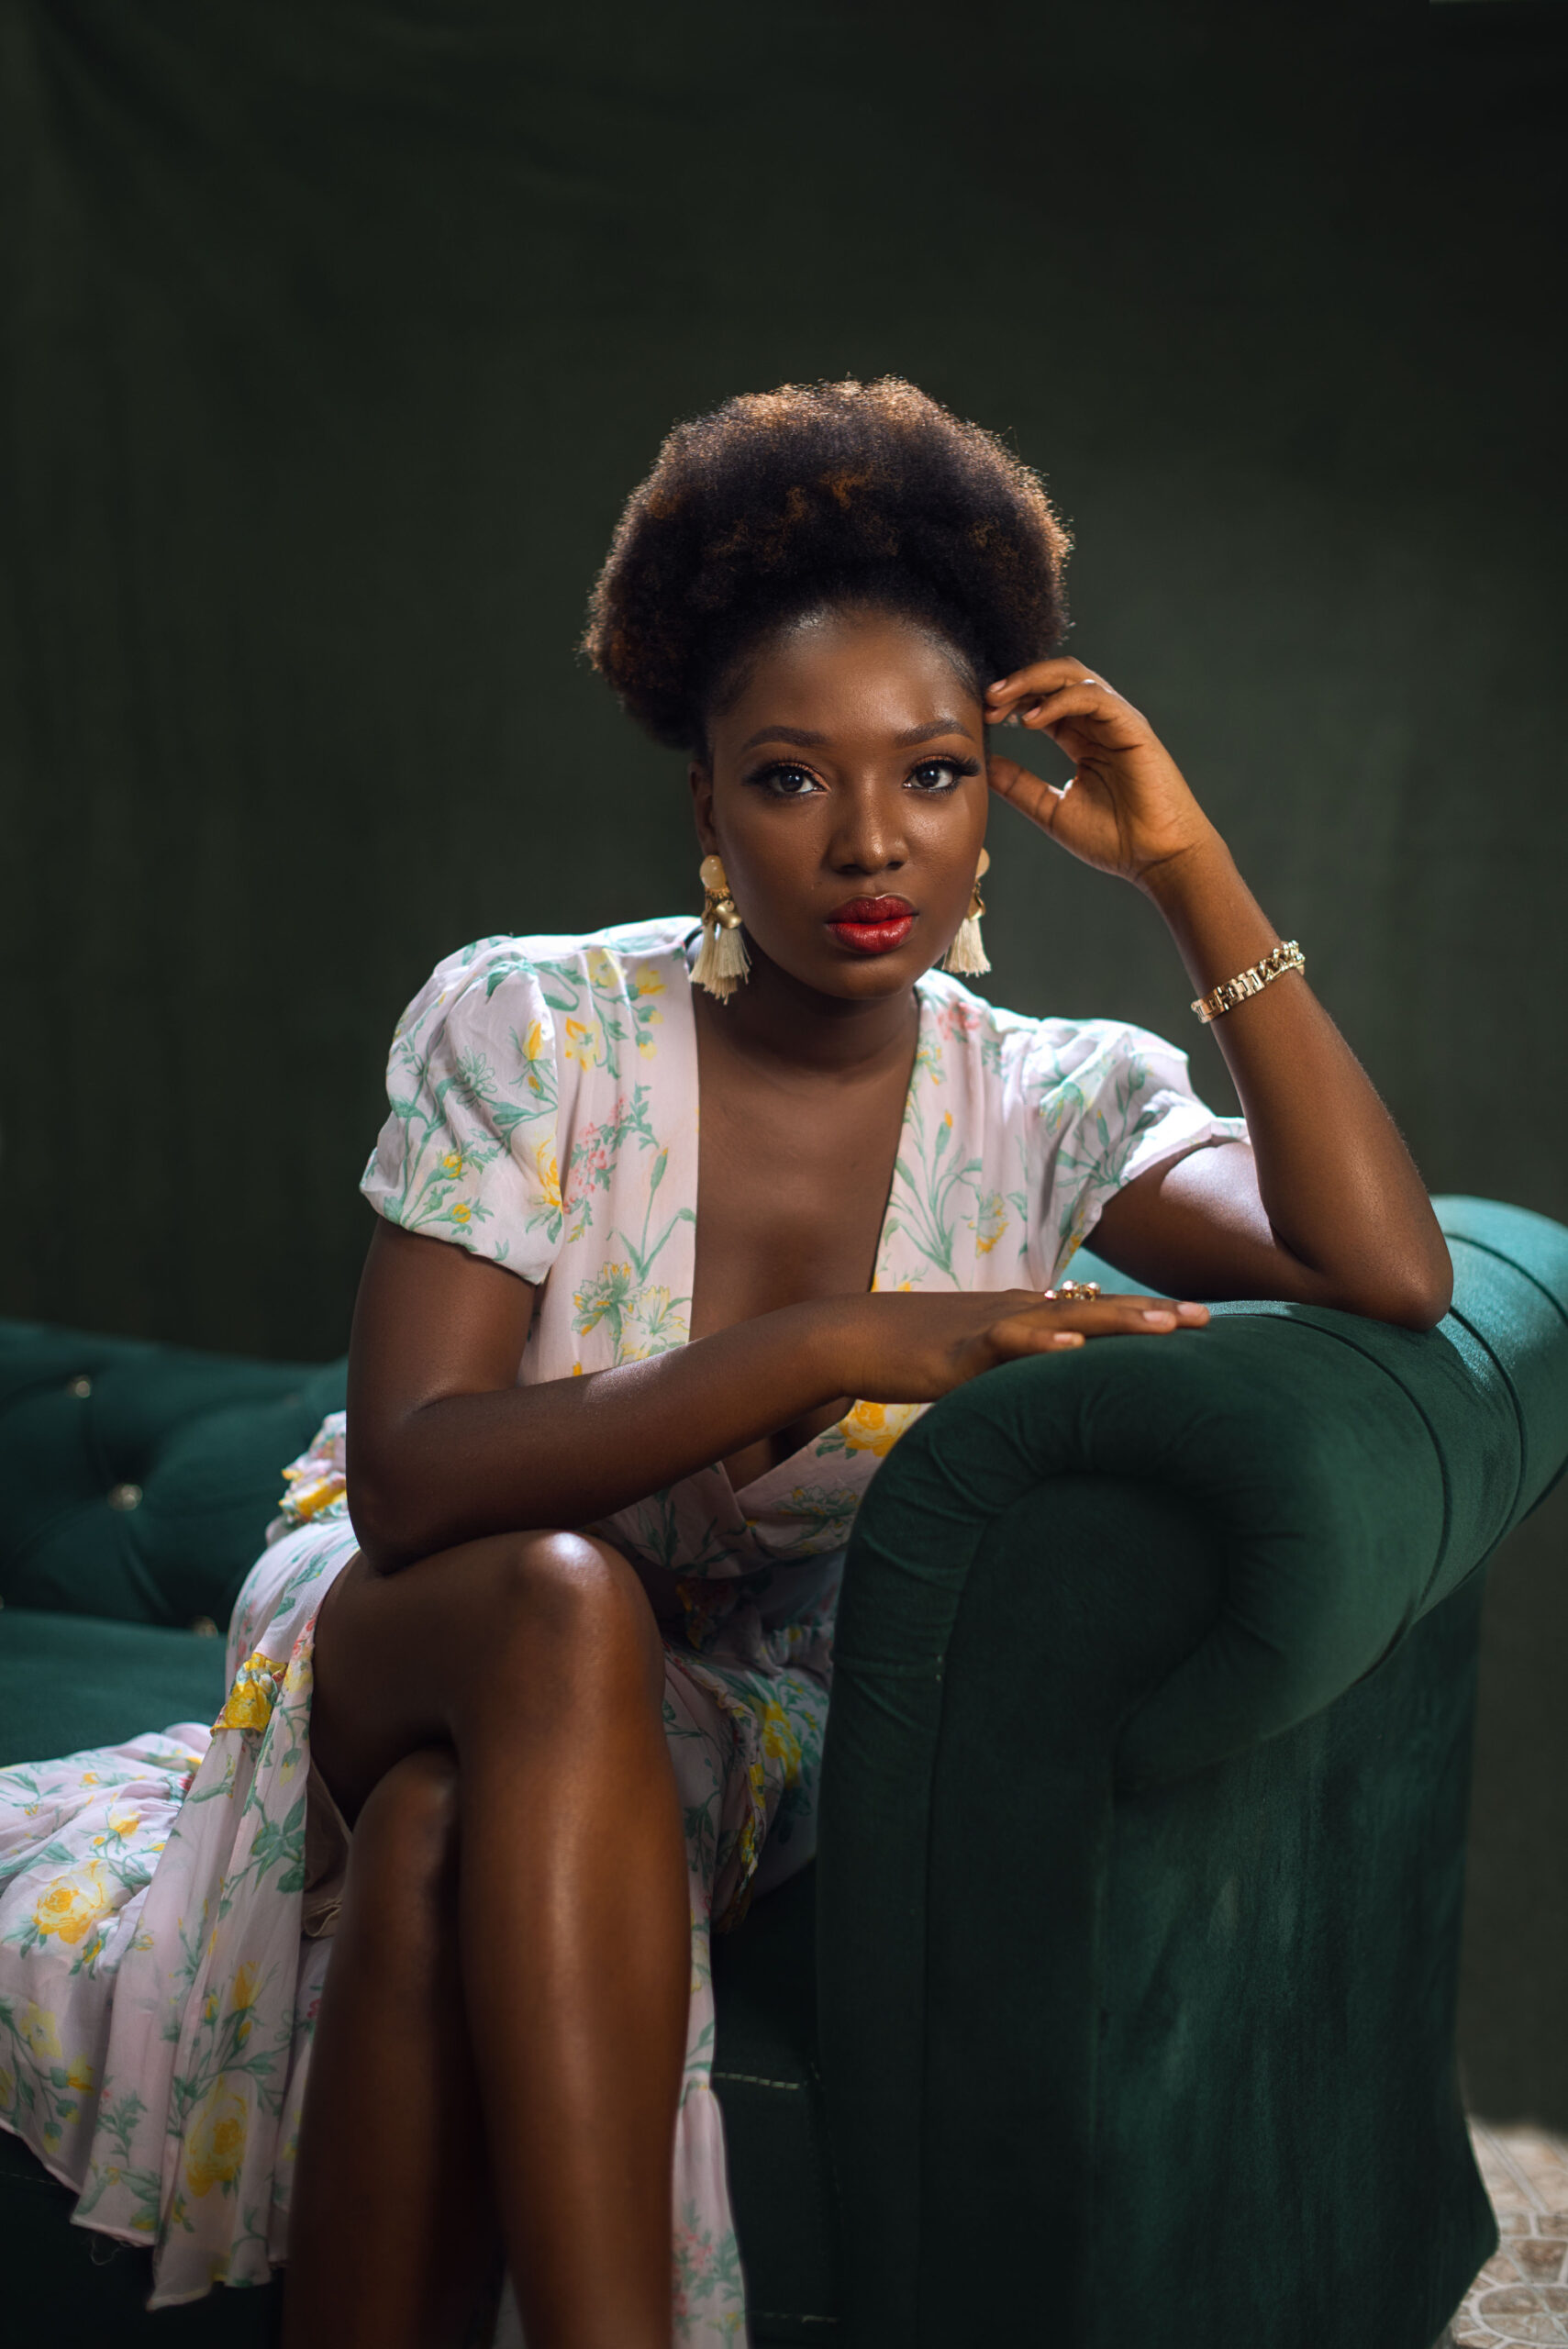 Lifestyle blogger Wumi Tuase 2021 plans new year goals